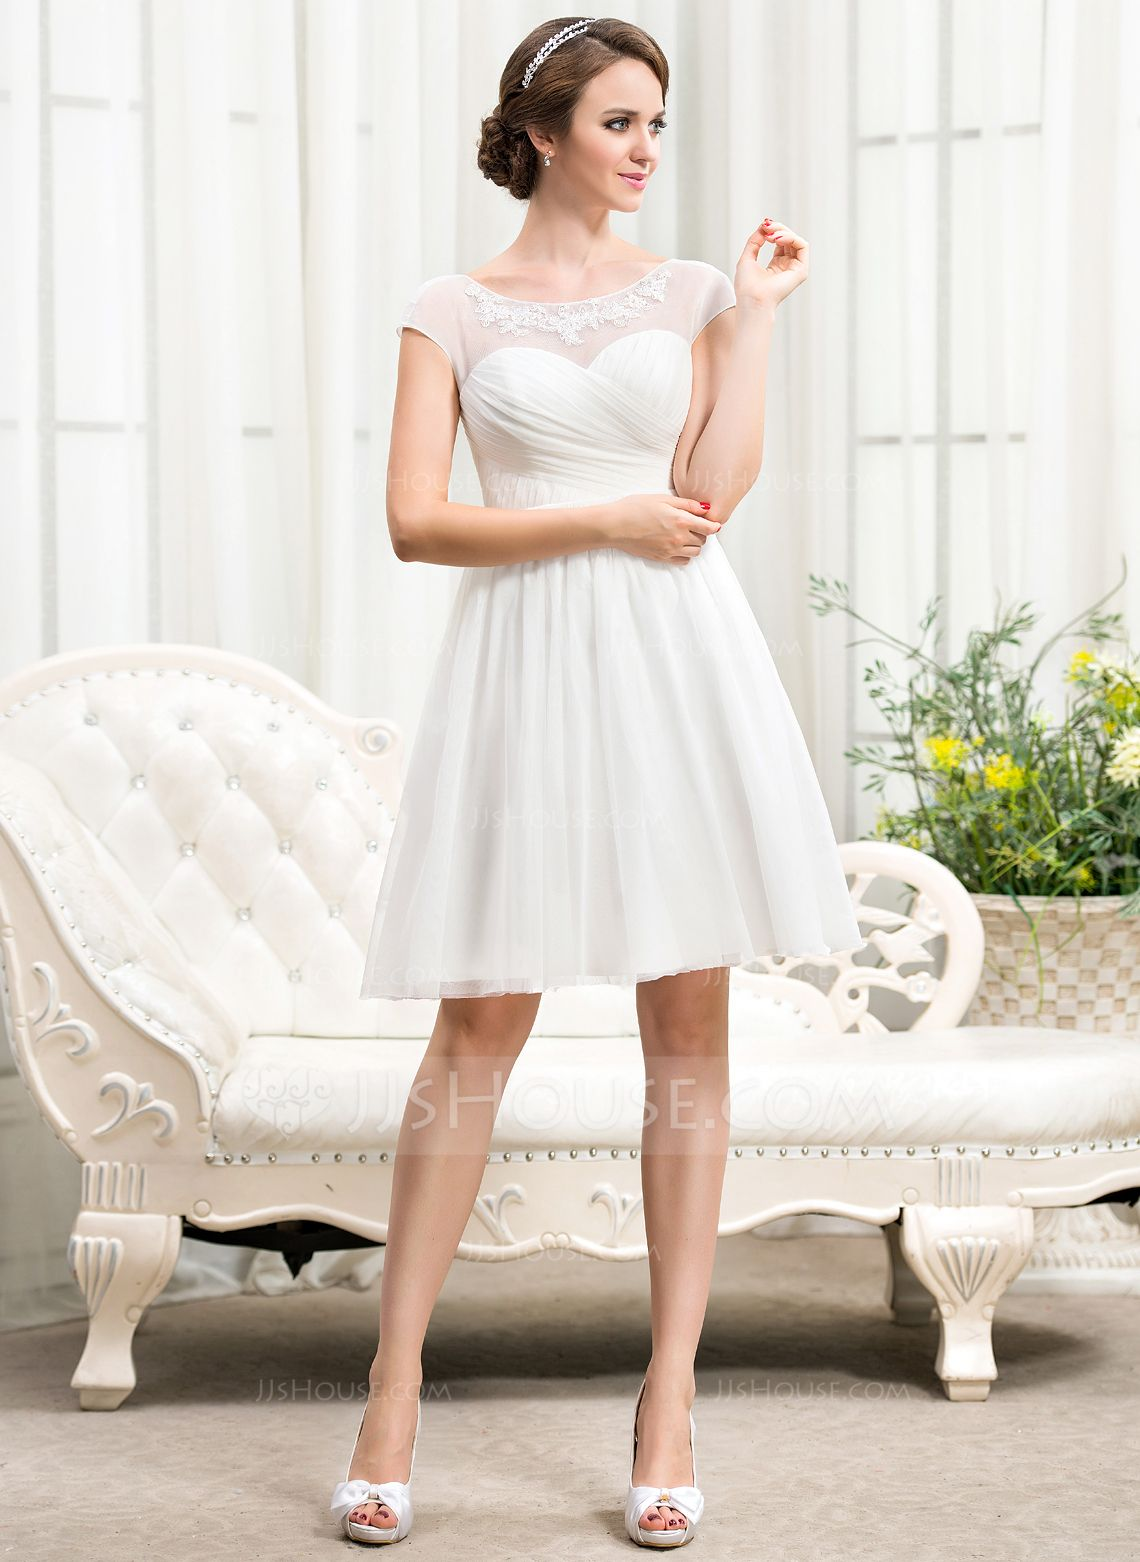 A-Line/Princess Scoop Neck Knee-Length Tulle Wedding Dress With Ruffle Beading Appliques Lace Sequins (002056244) - JJsHouse